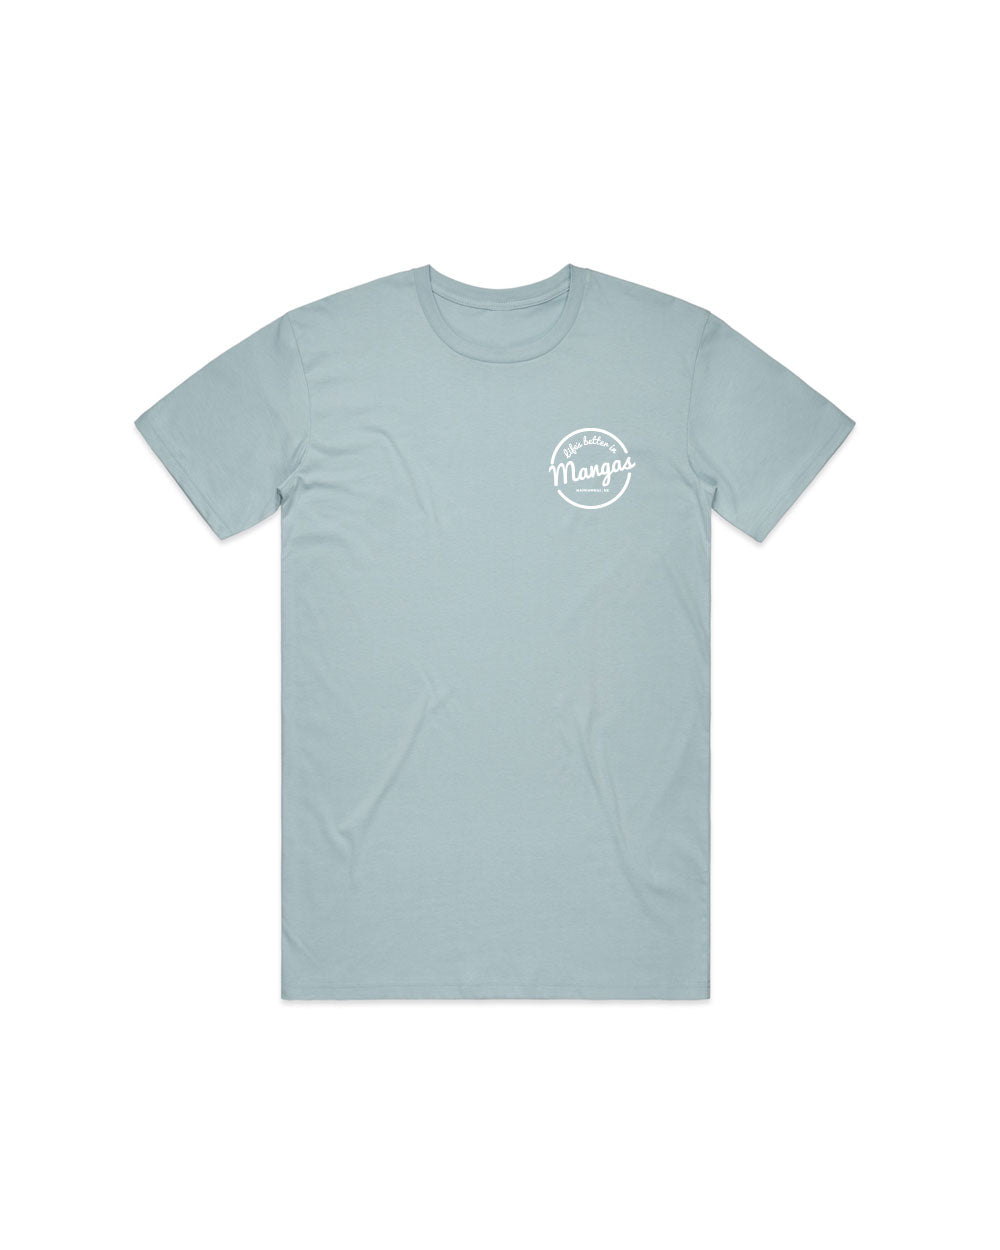 Mens Life's Better Sky Tee - Threadbox